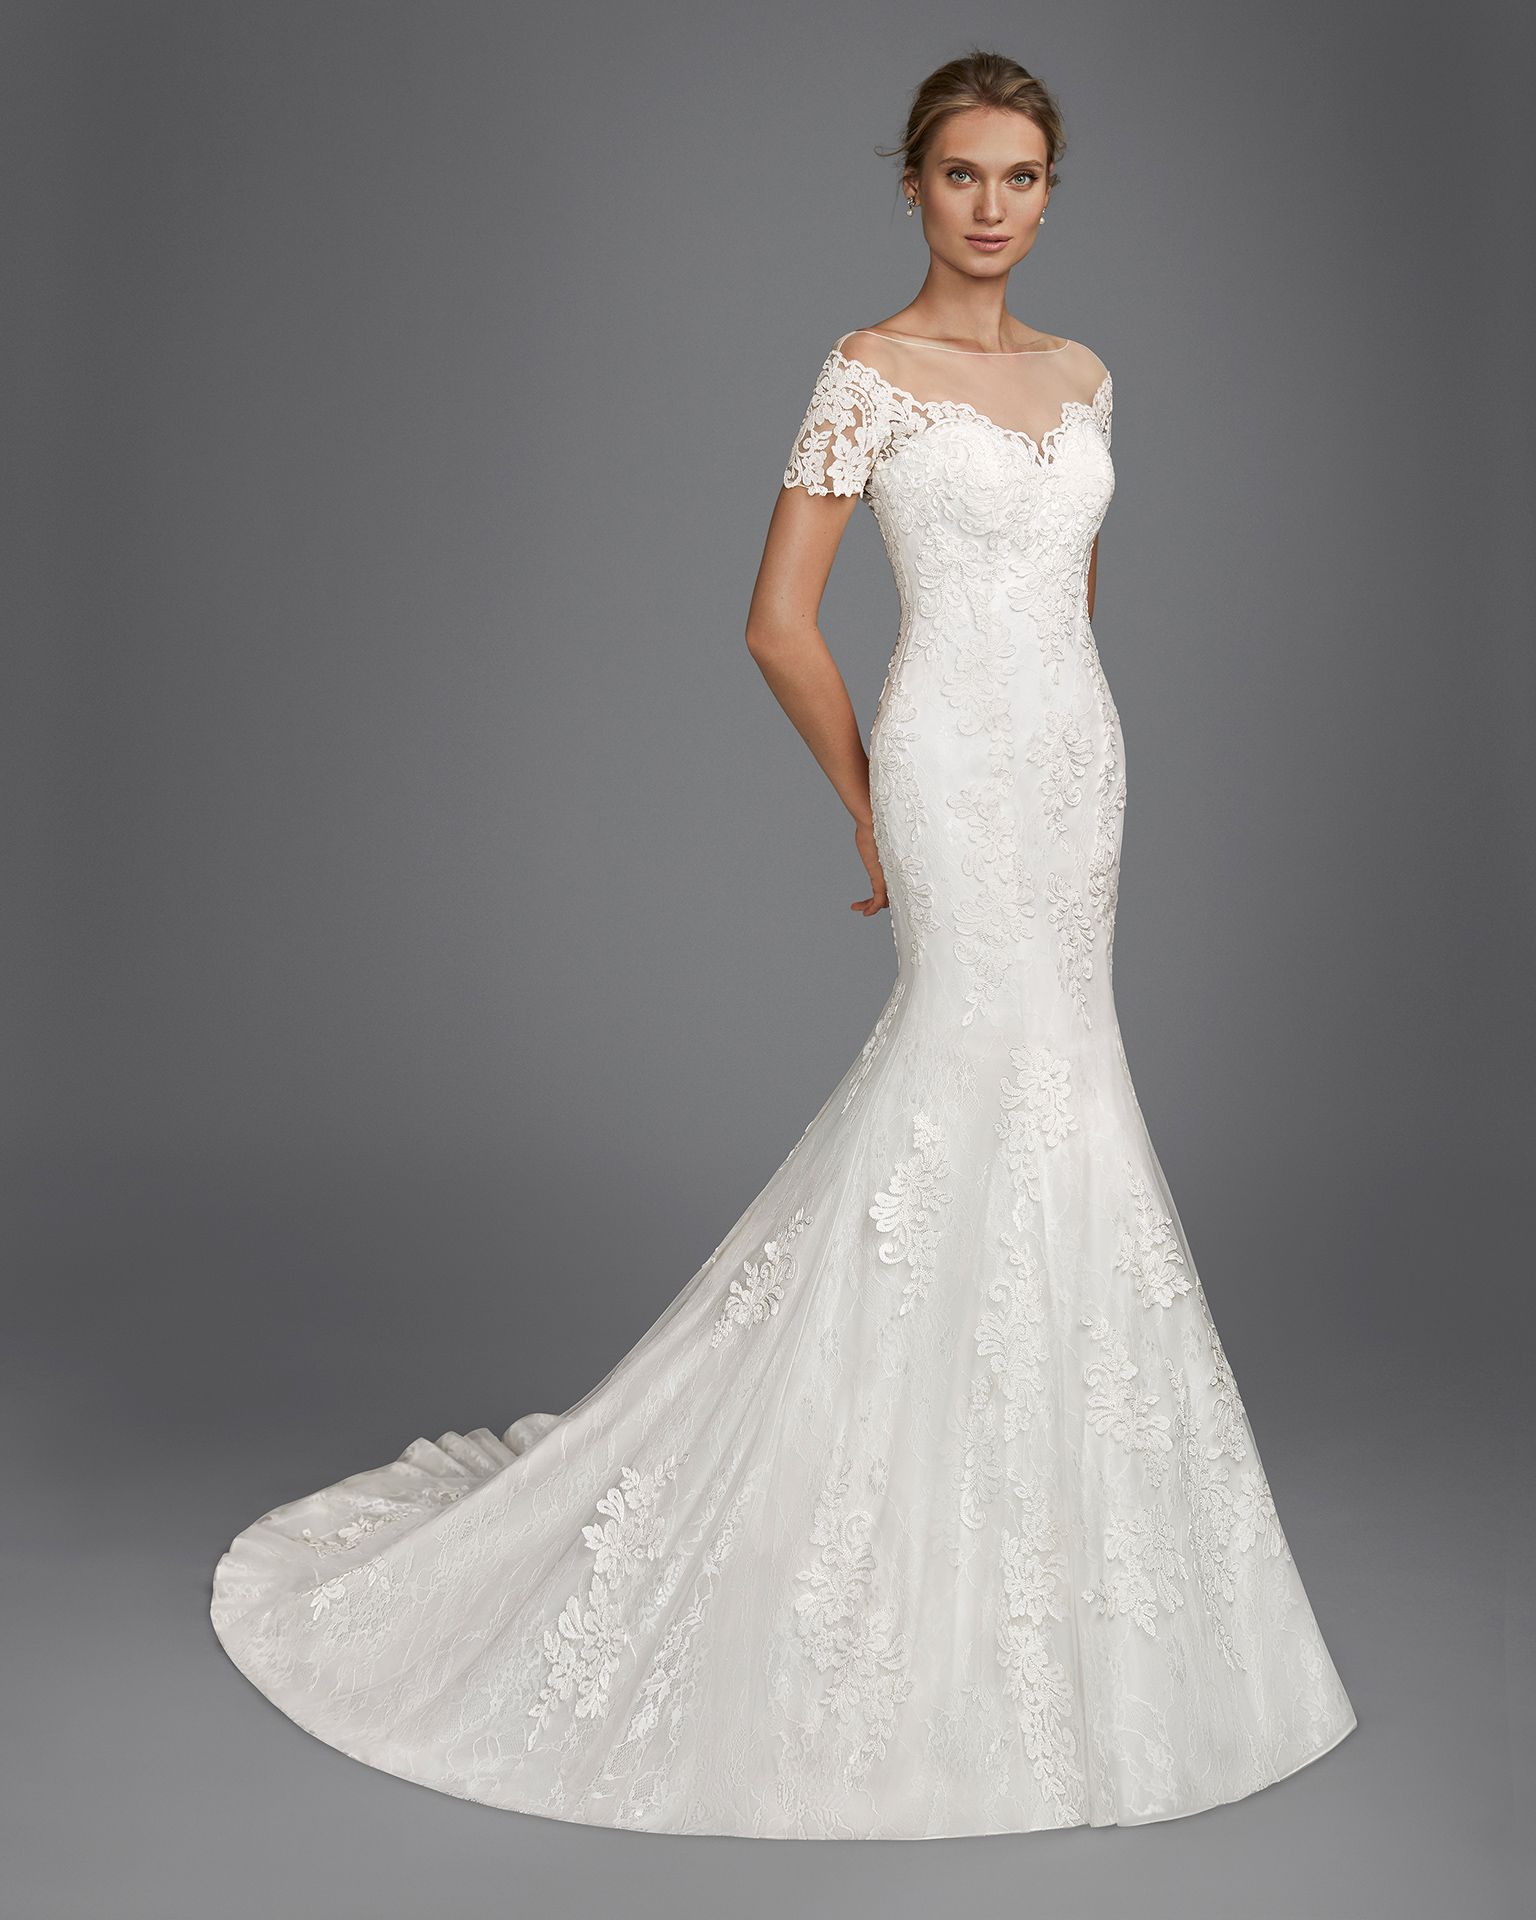 Mermaid-style lace wedding dress with off-the-shoulder neckline.